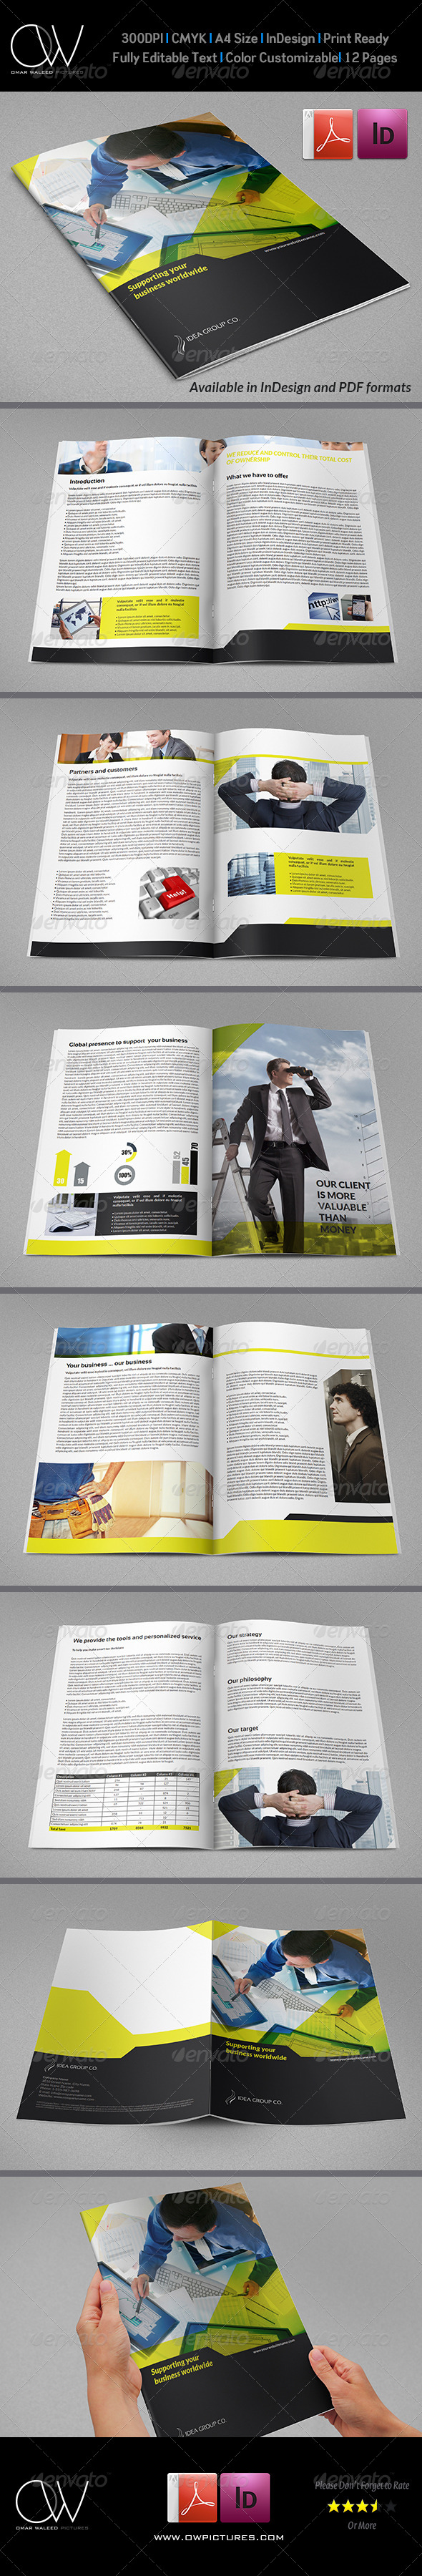 GraphicRiver Corporate Brochure Template Vol.22 12 Pages 6745412